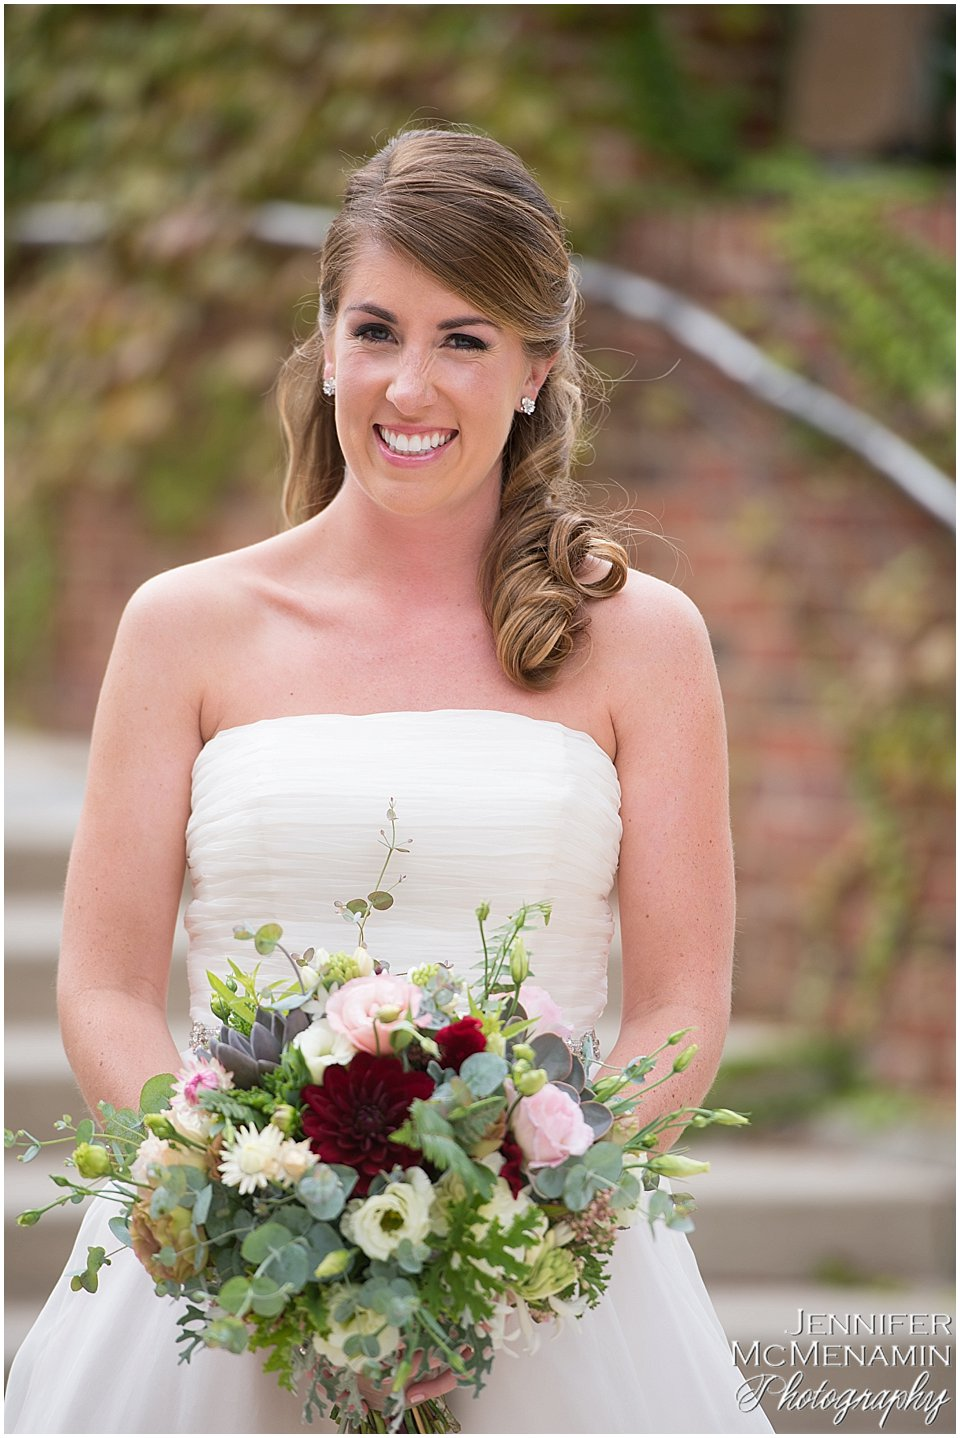 002-BergeronBarker_00007_Jennifer-McMenamin-Photography-AVAM-wedding-Baltimore-wedding-photographer